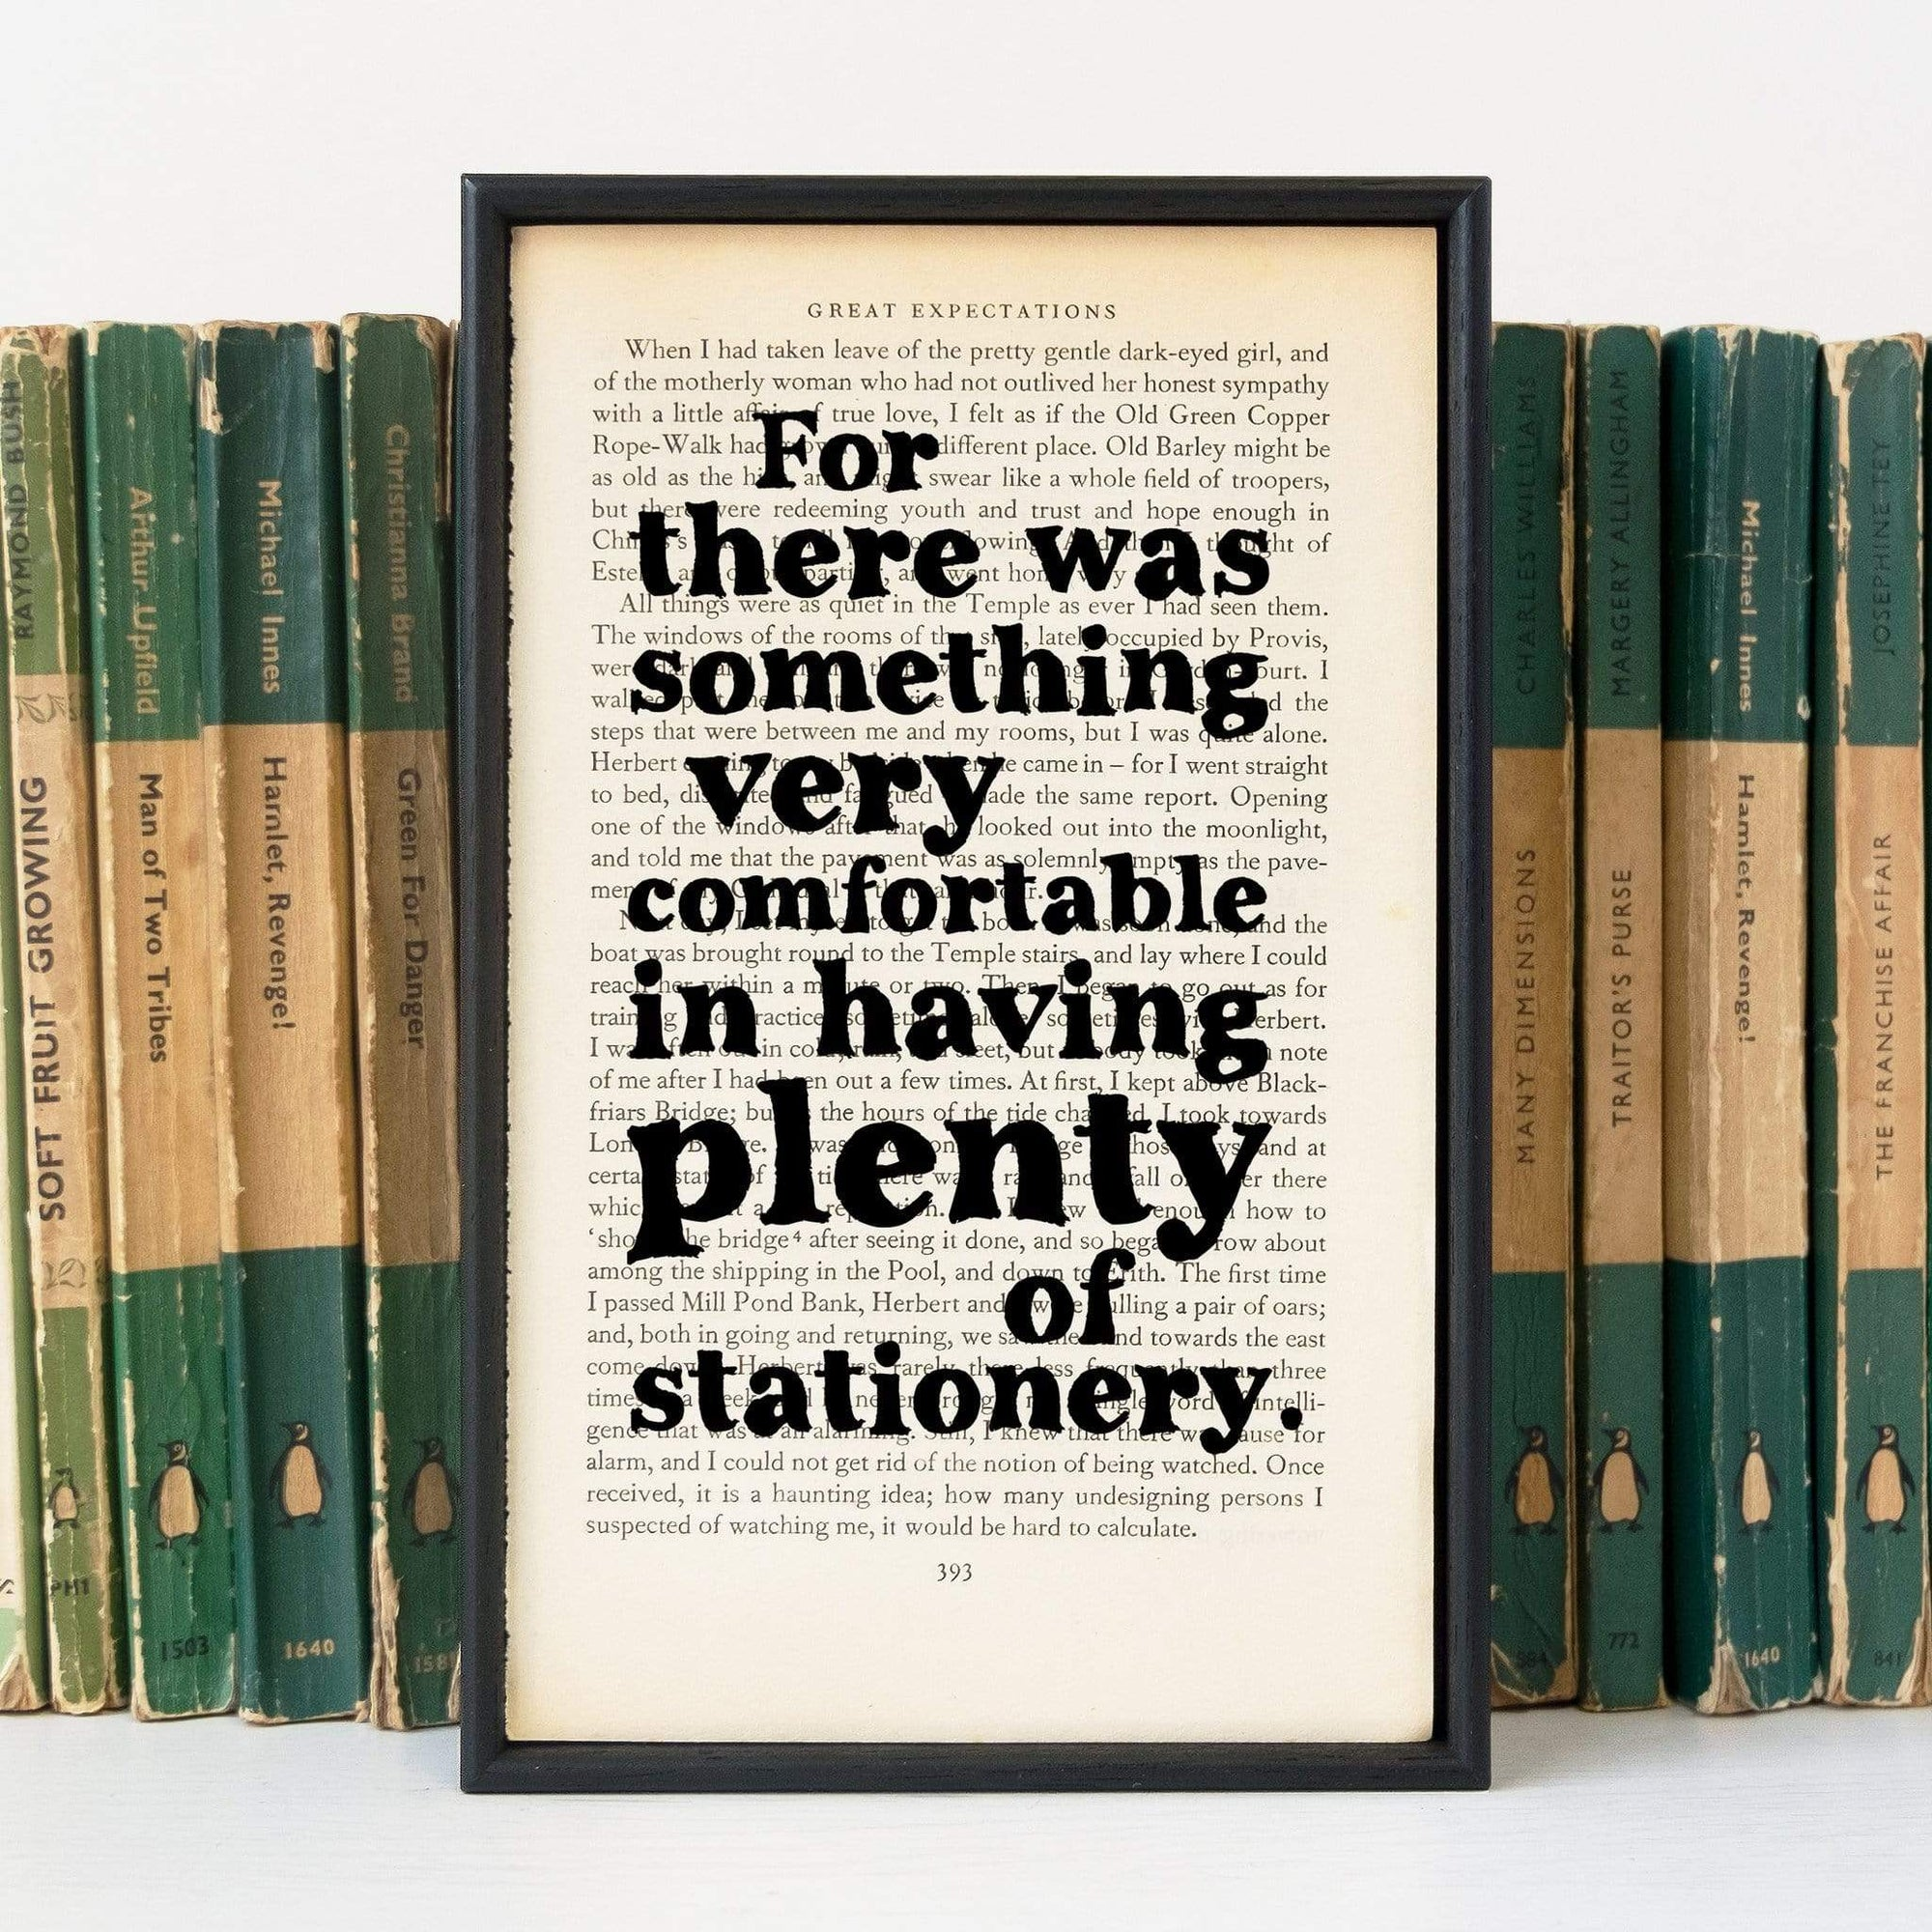 Plenty of Stationery Book Print BookGeek